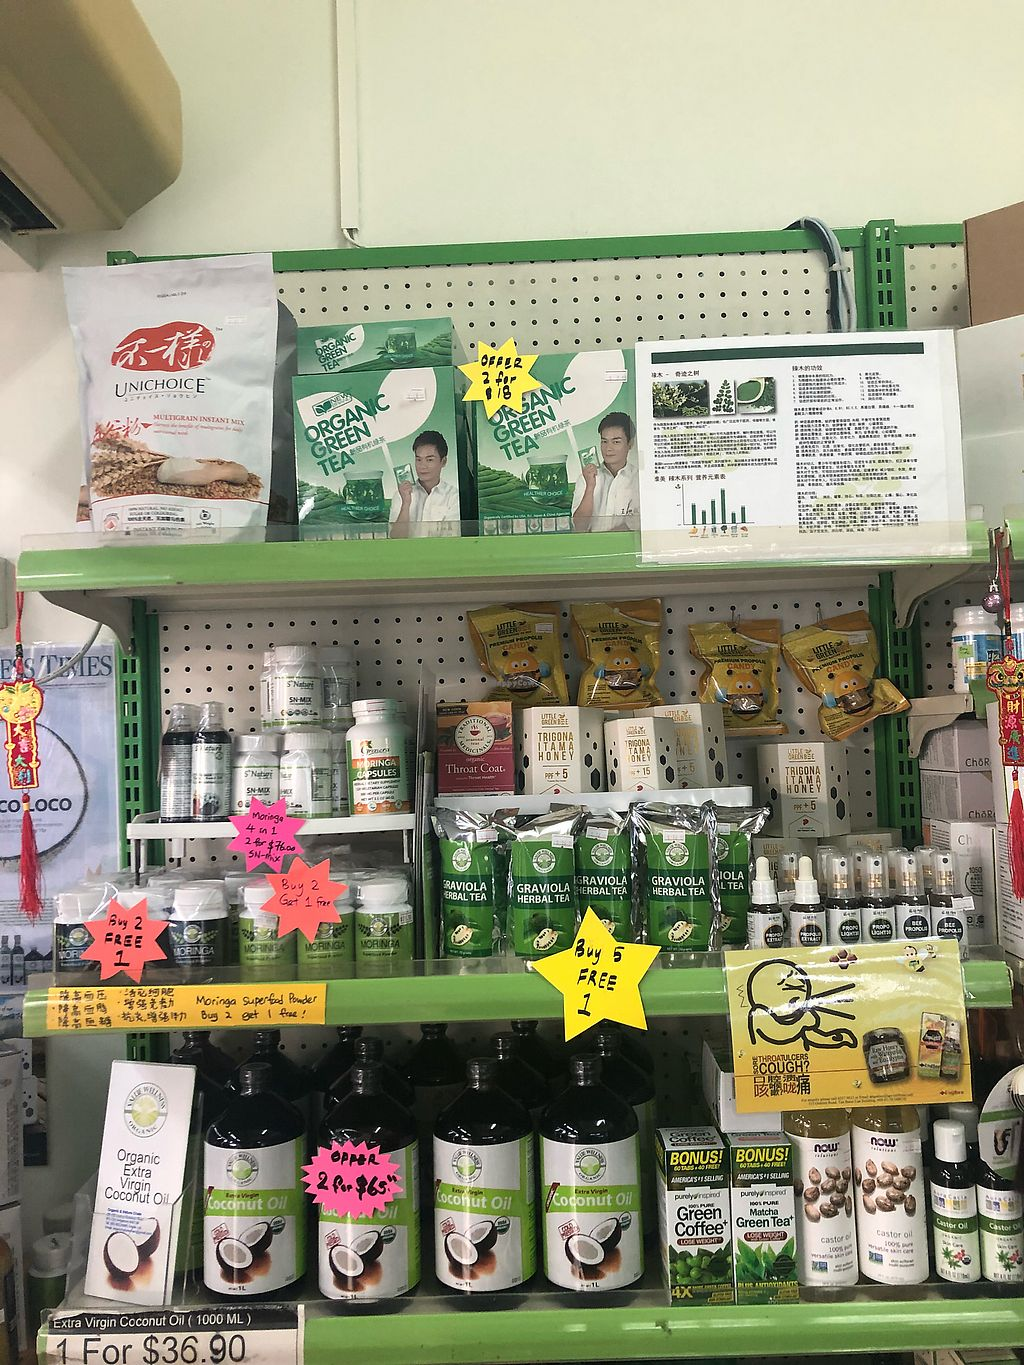 """Photo of Organic and Nature Chain  by <a href=""""/members/profile/AmyLeySzeThoo"""">AmyLeySzeThoo</a> <br/>Organic product  <br/> March 22, 2018  - <a href='/contact/abuse/image/114625/374328'>Report</a>"""